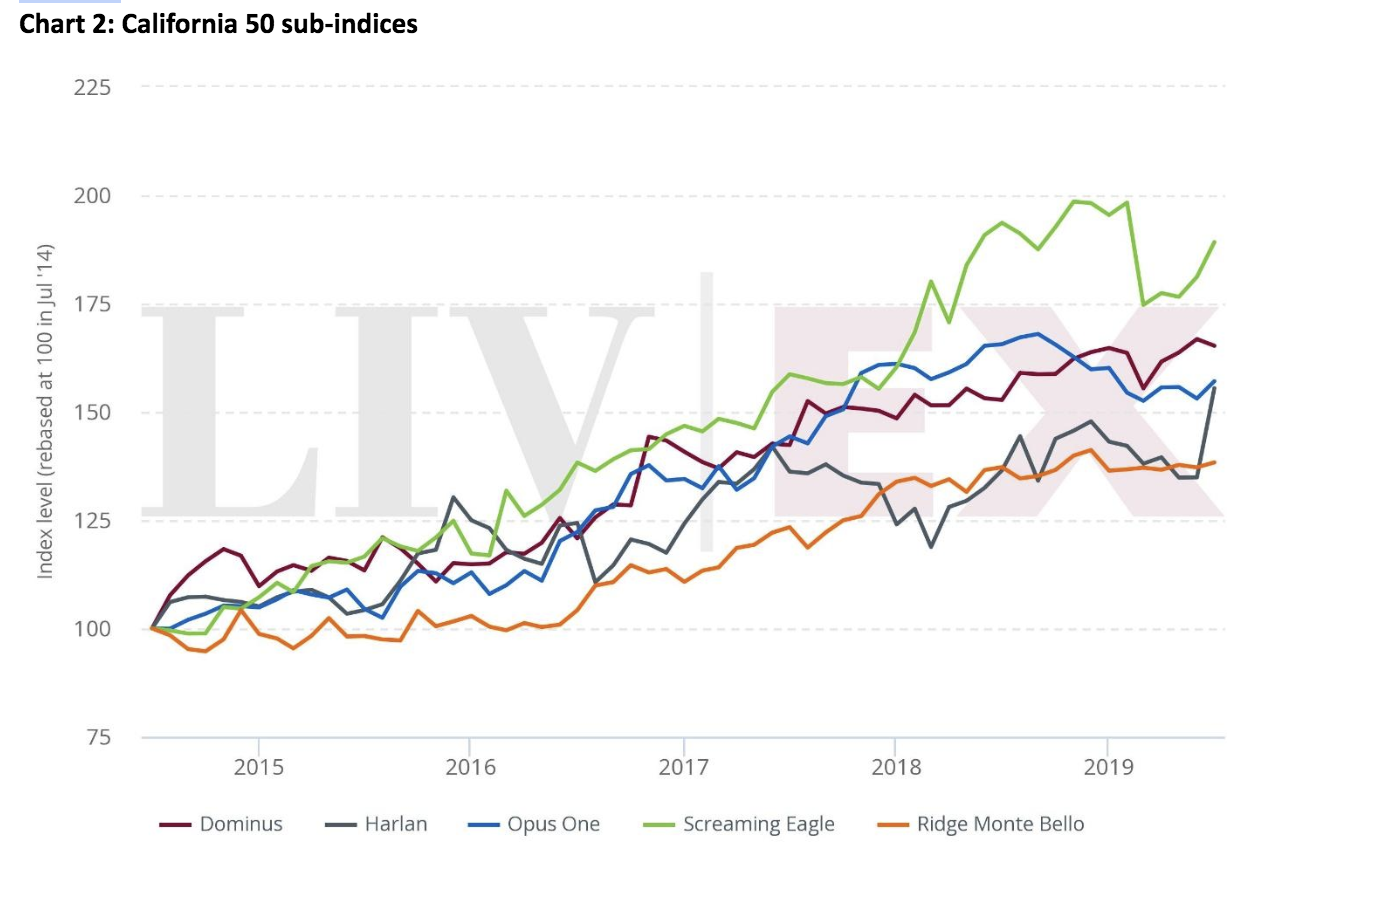 https://robert-parker-content-prod.s3.amazonaws.com/media/image/2019/09/16/ee0a405a39b944858fdd6176d050a5ee_liv-ex-california-sub-indices_chart_two.png